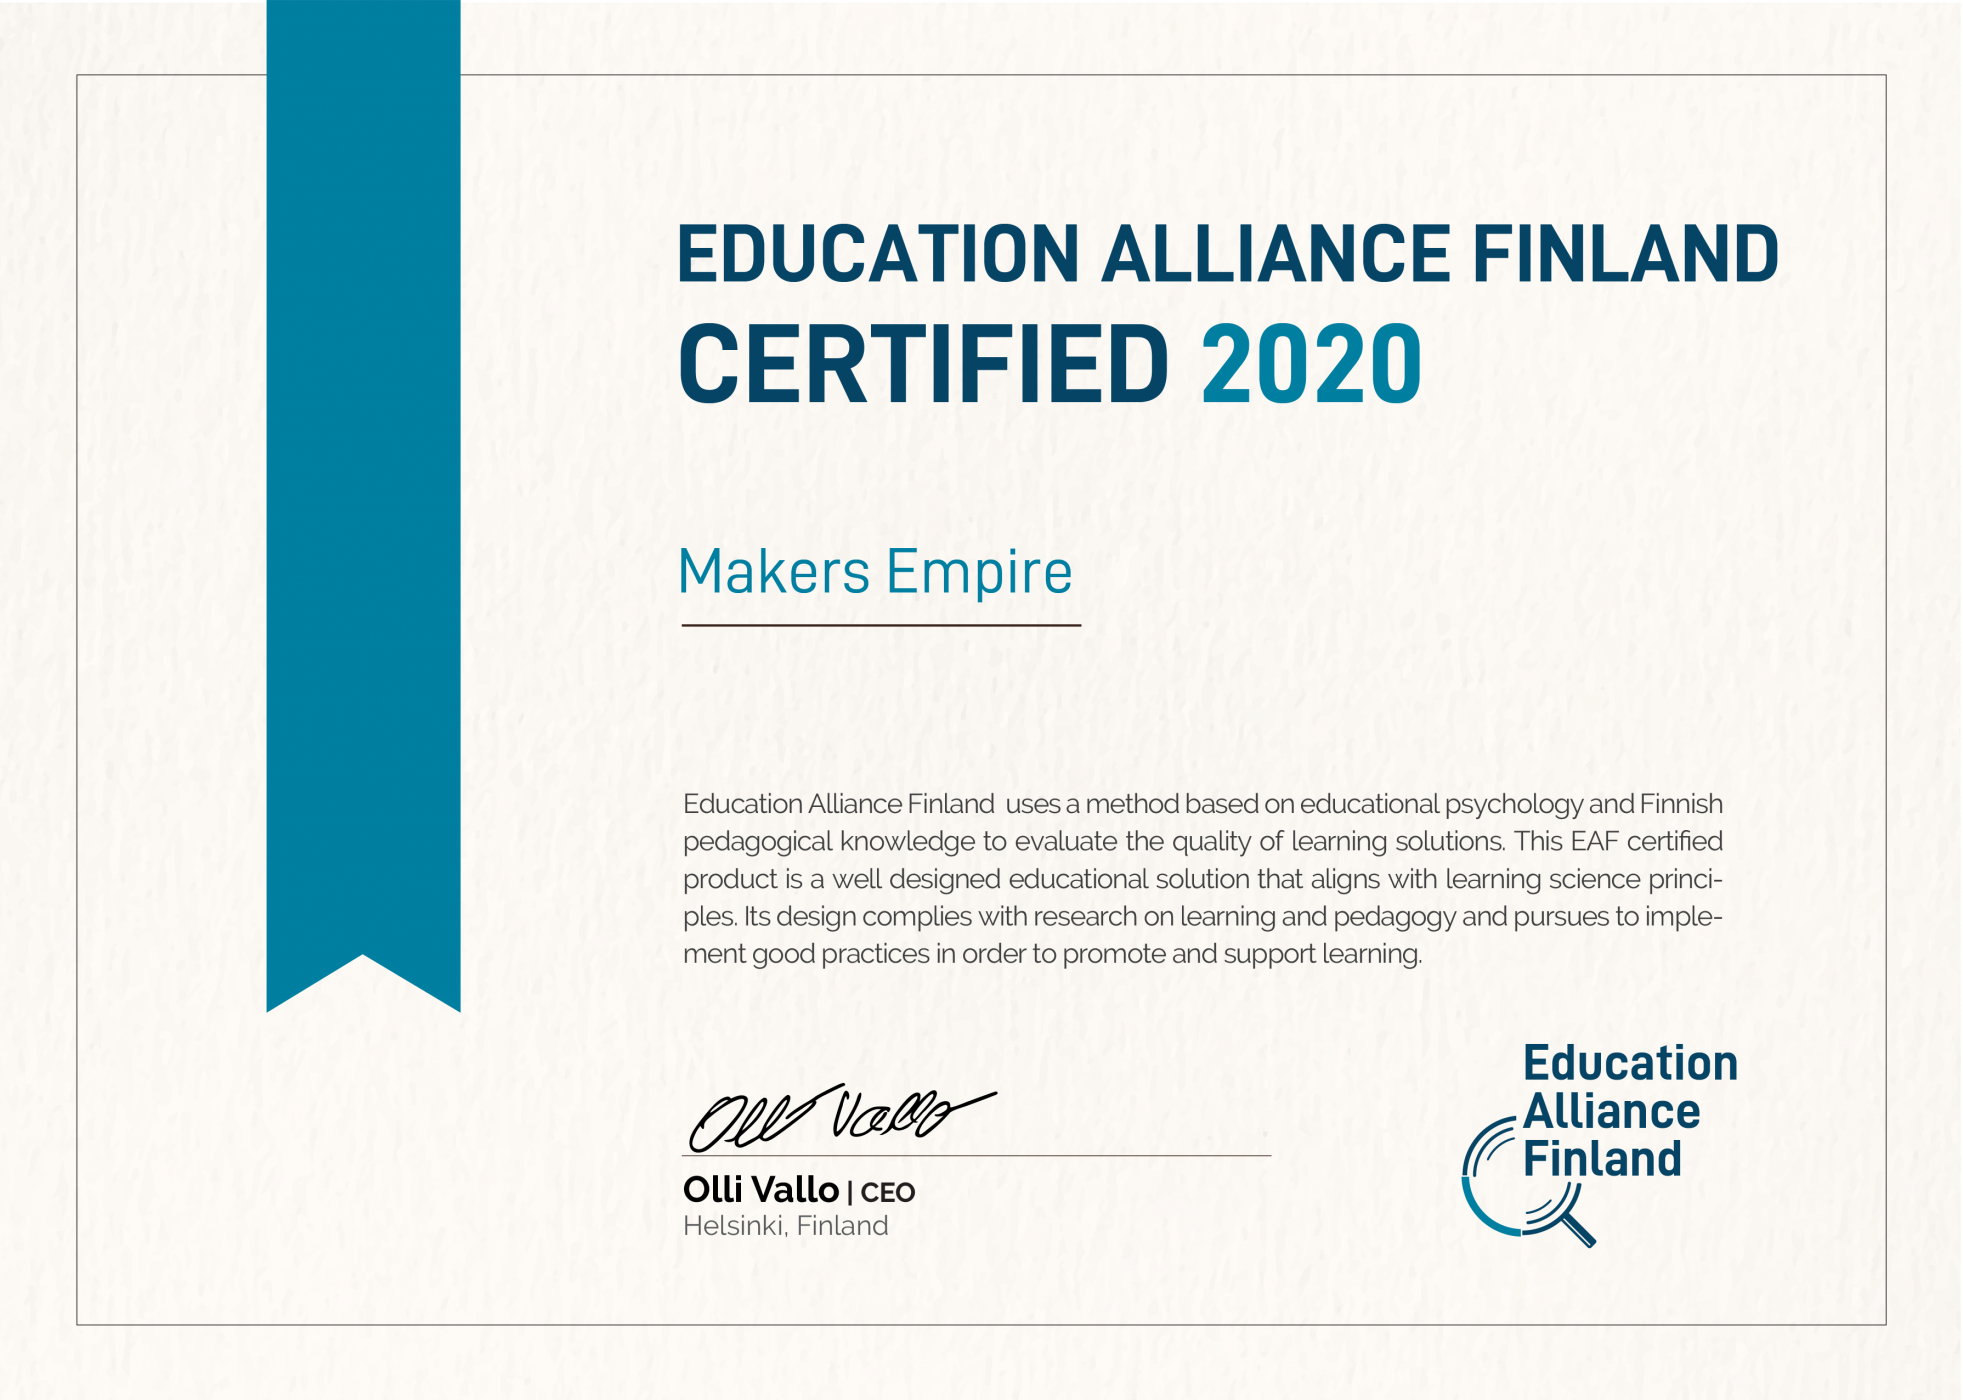 Makers Empire accredited by Education Alliance Finland for pedagogical quality